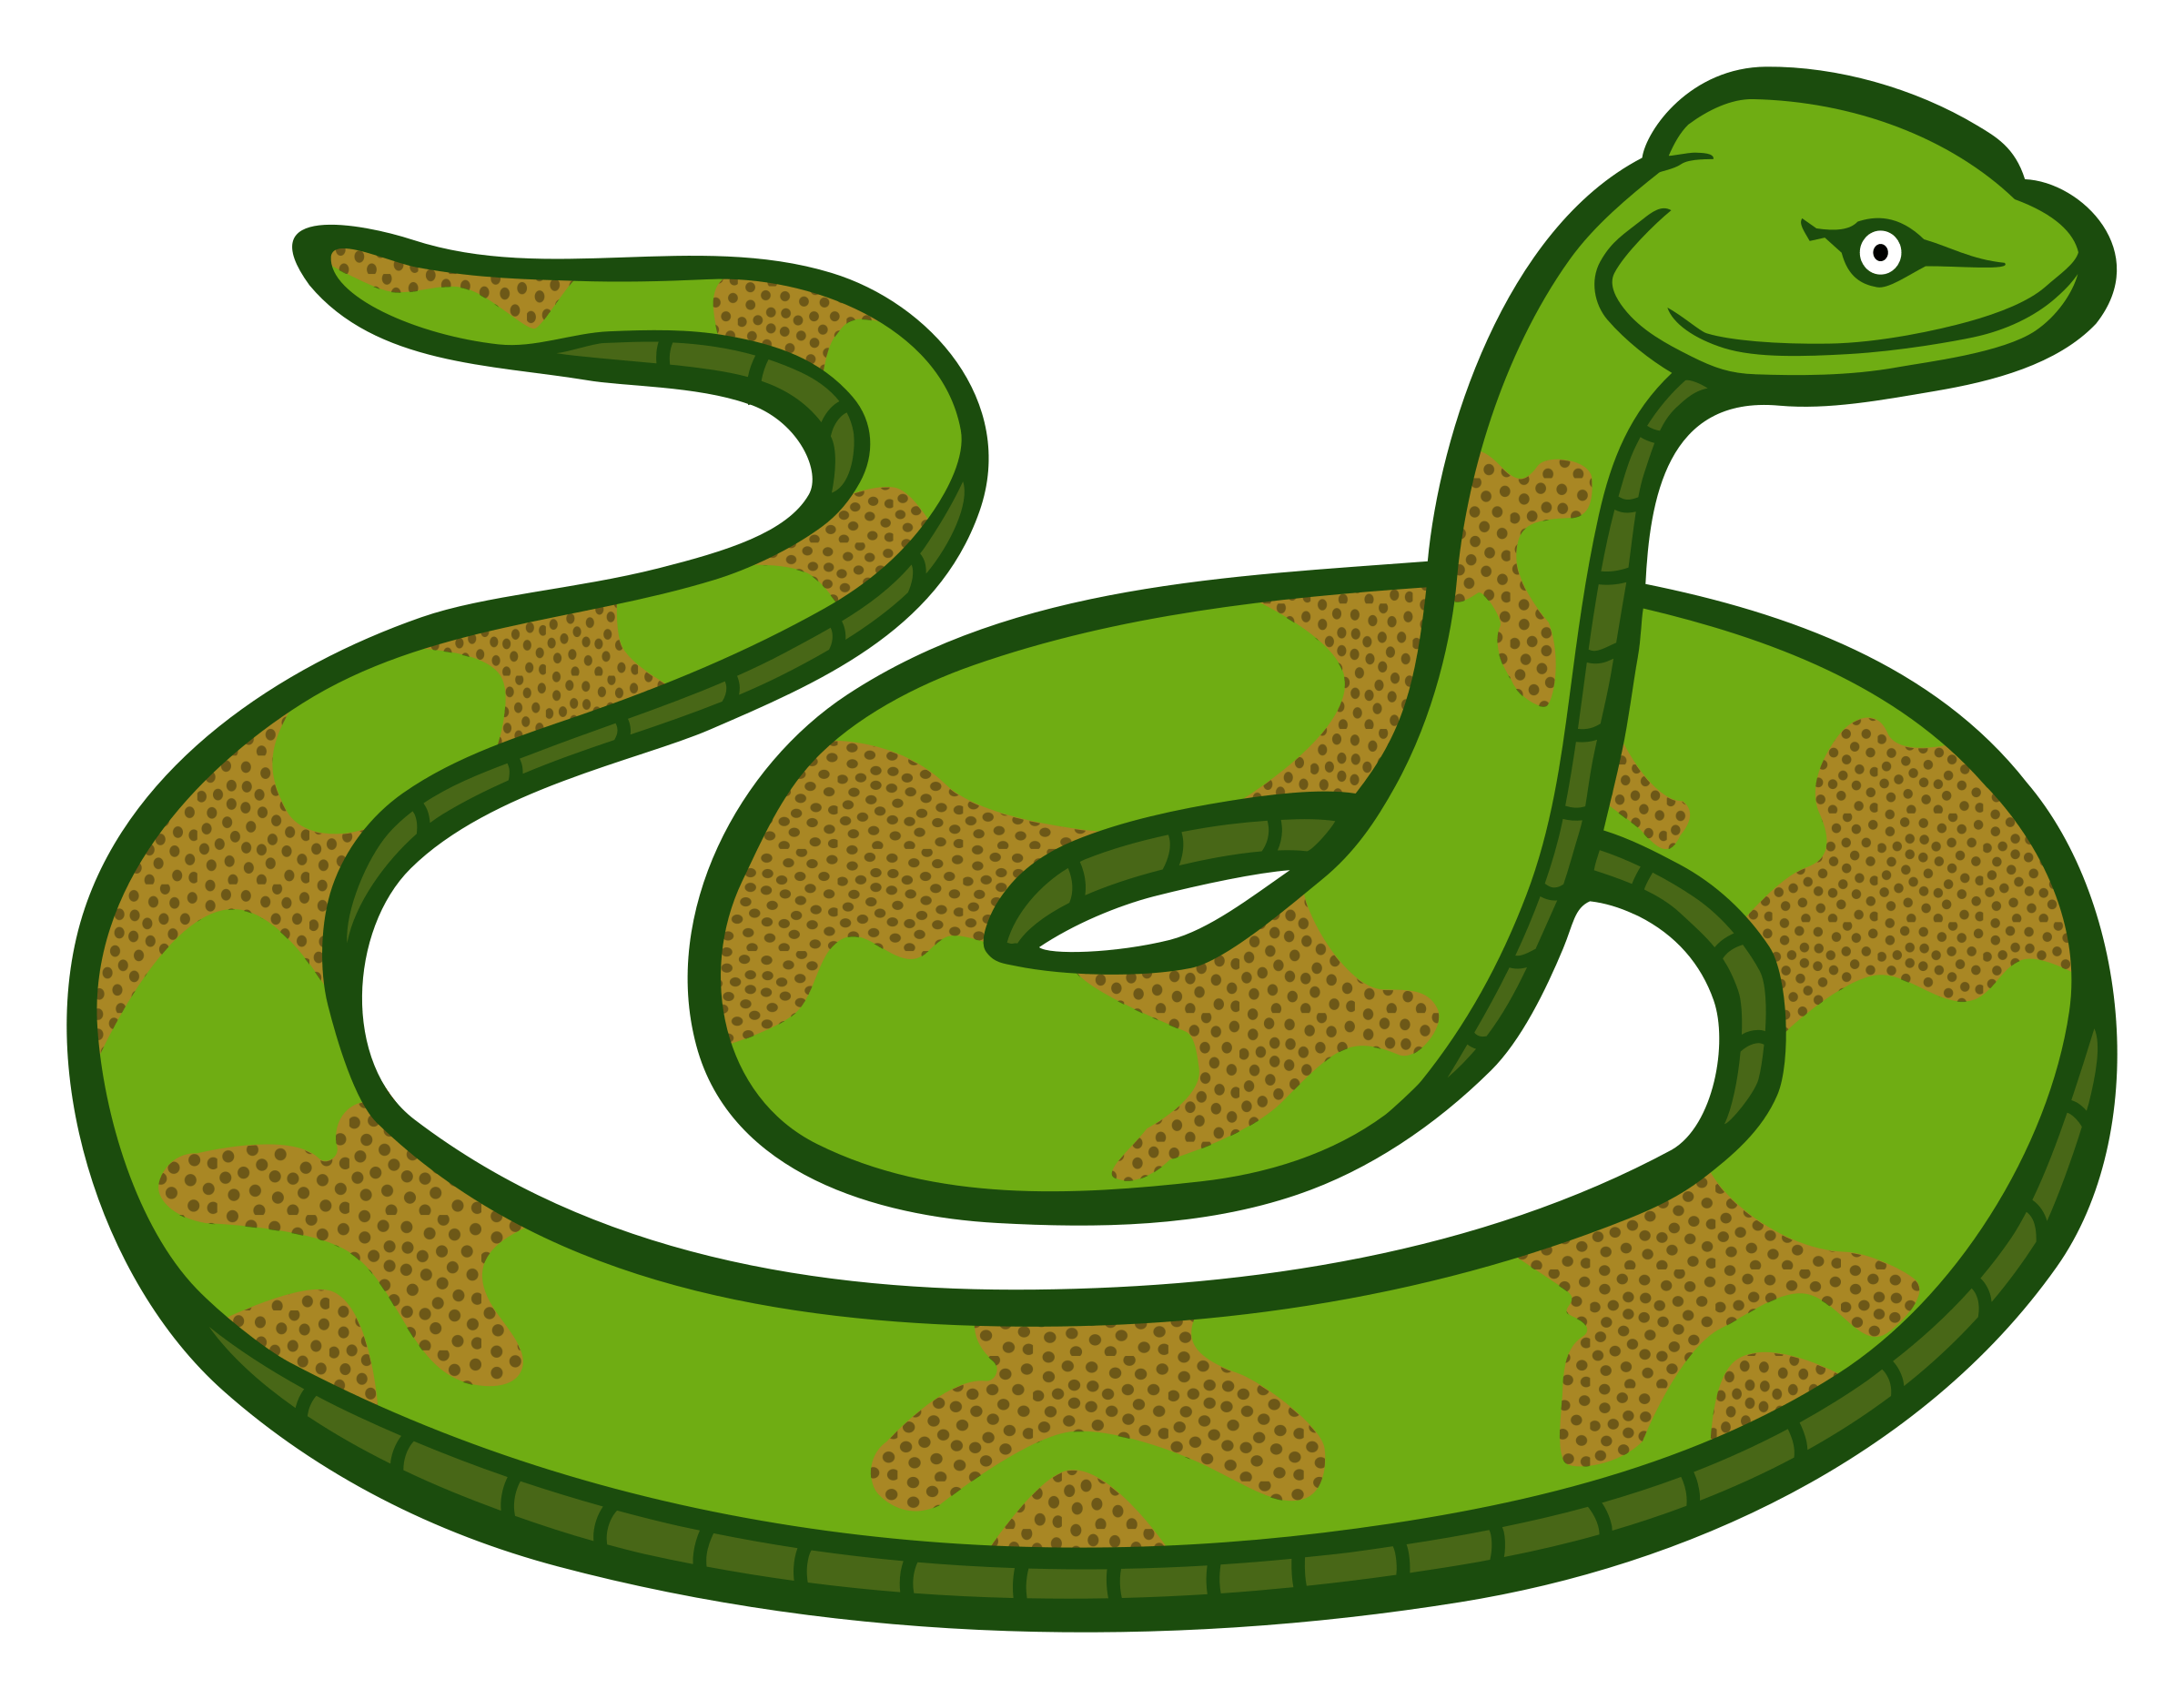 Snake clipart poison. Scary at getdrawings com